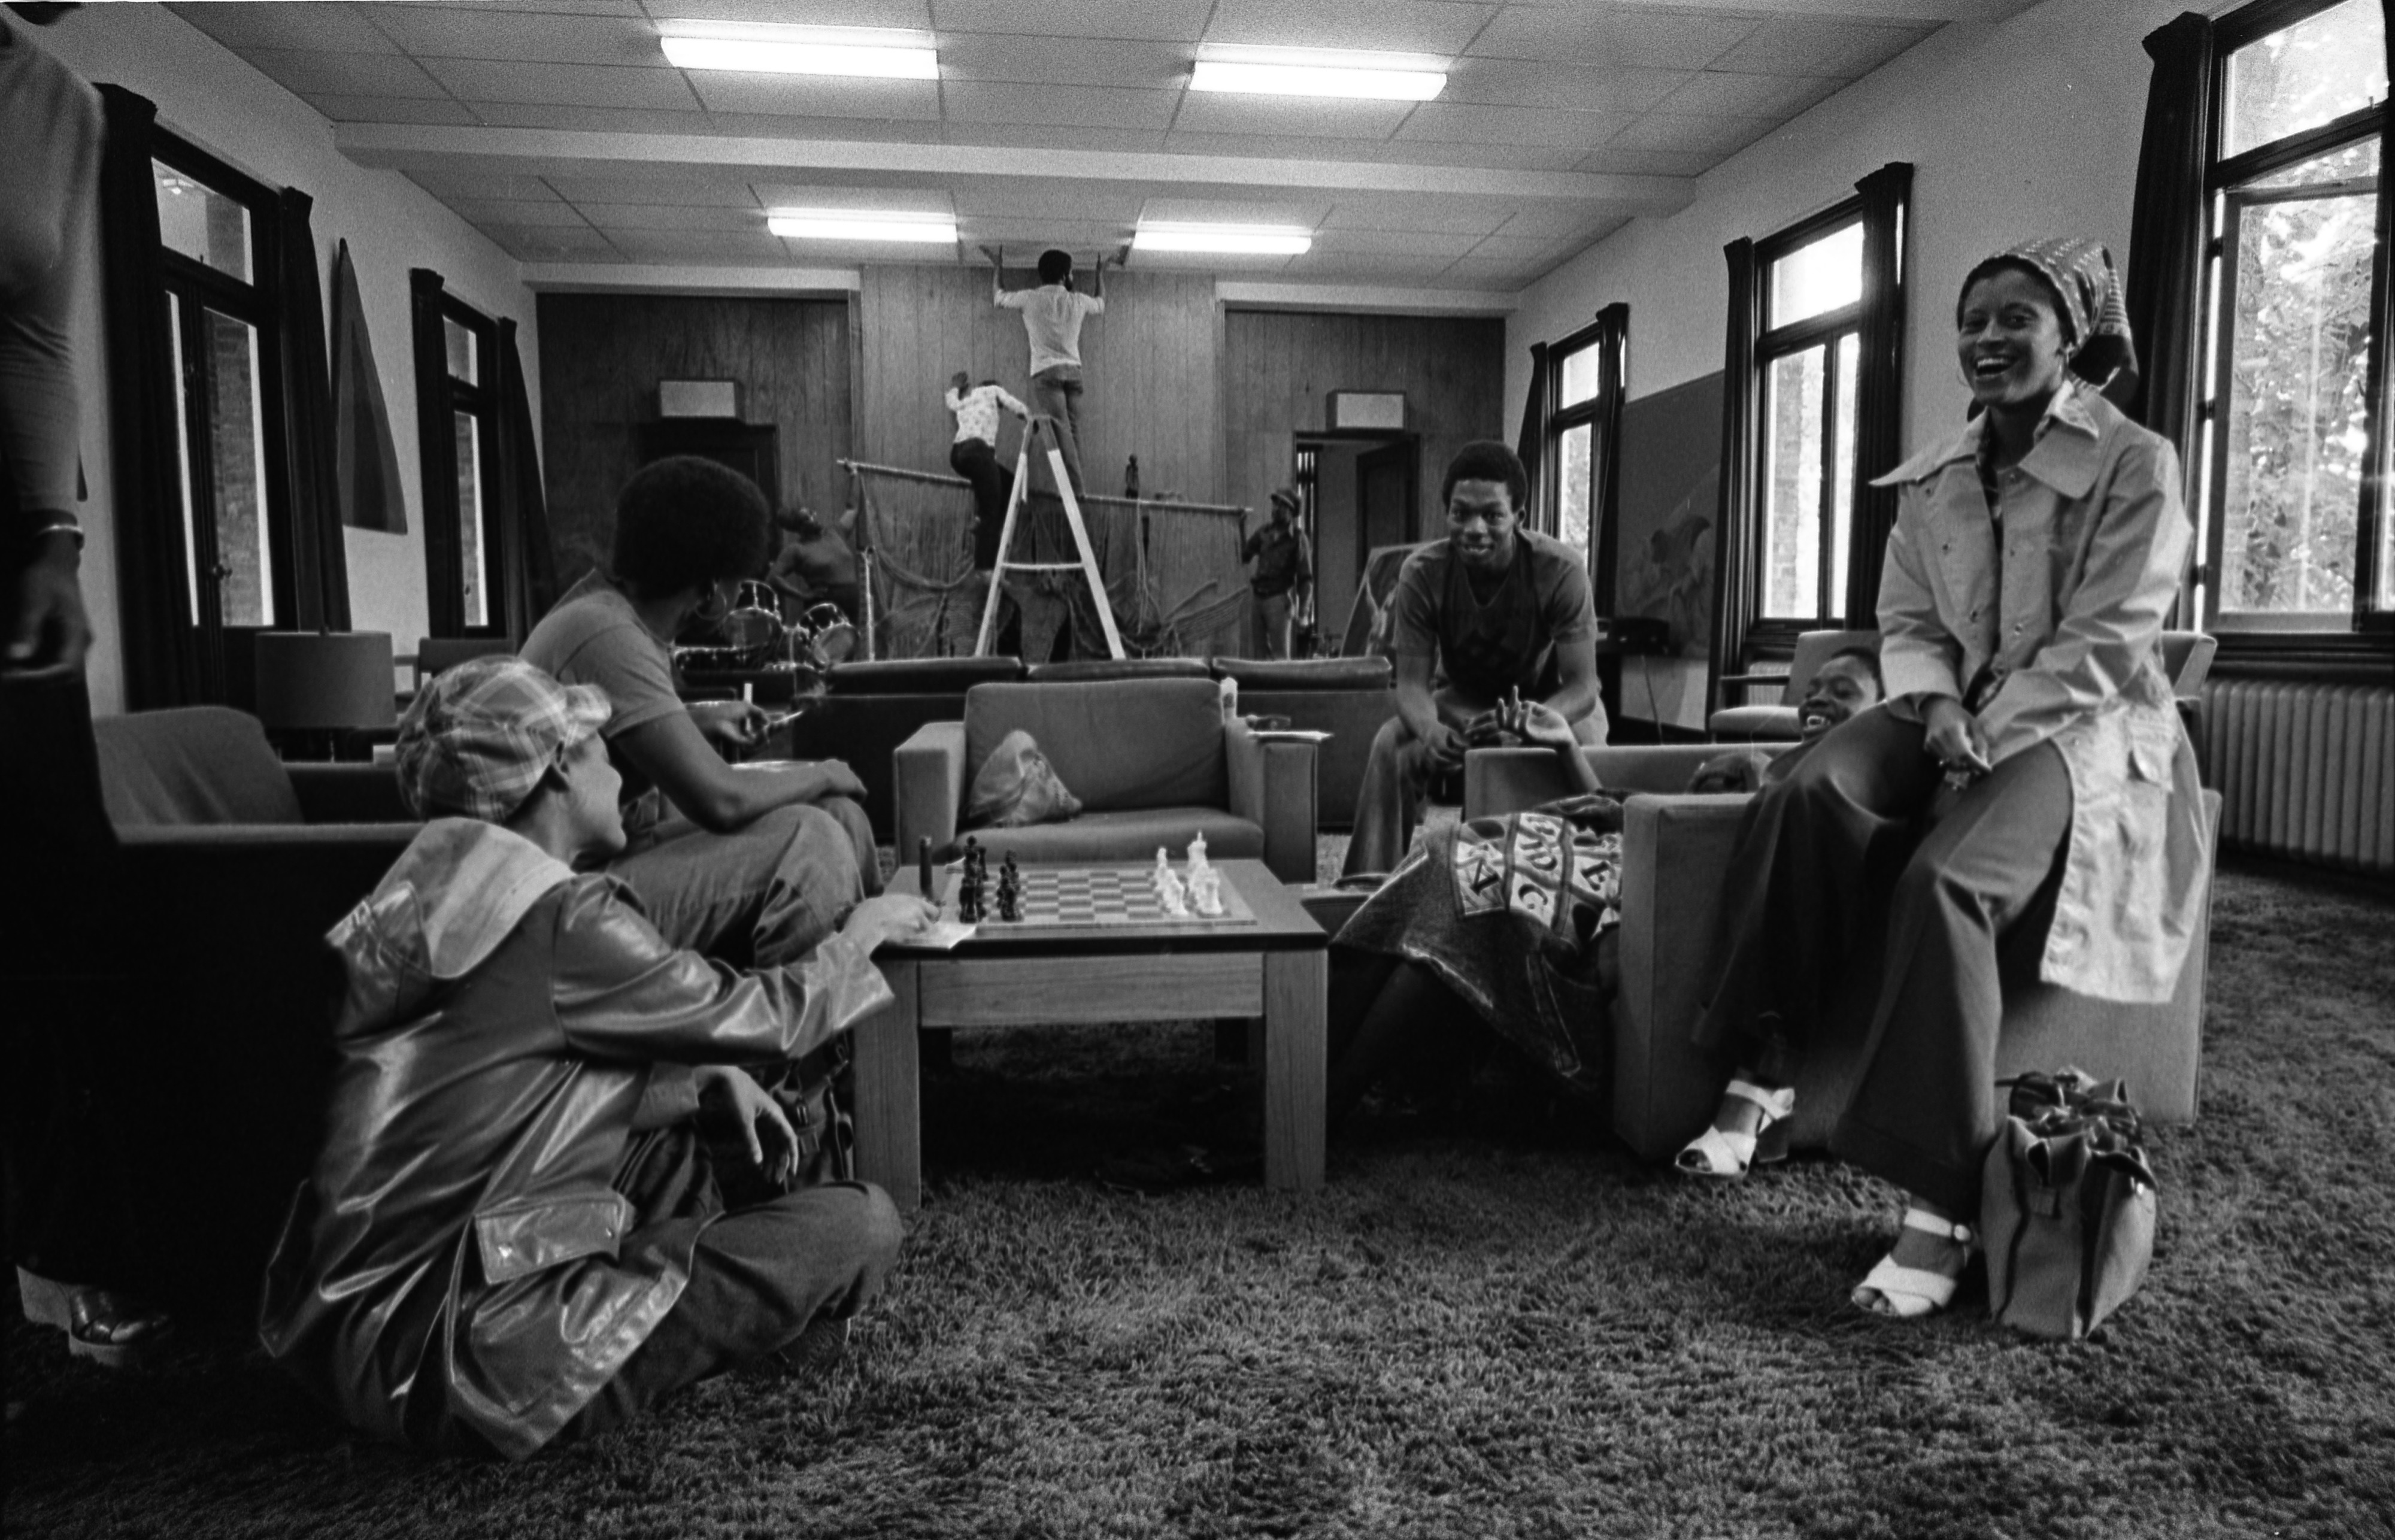 Students At The Trotter House, September 10, 1975 image